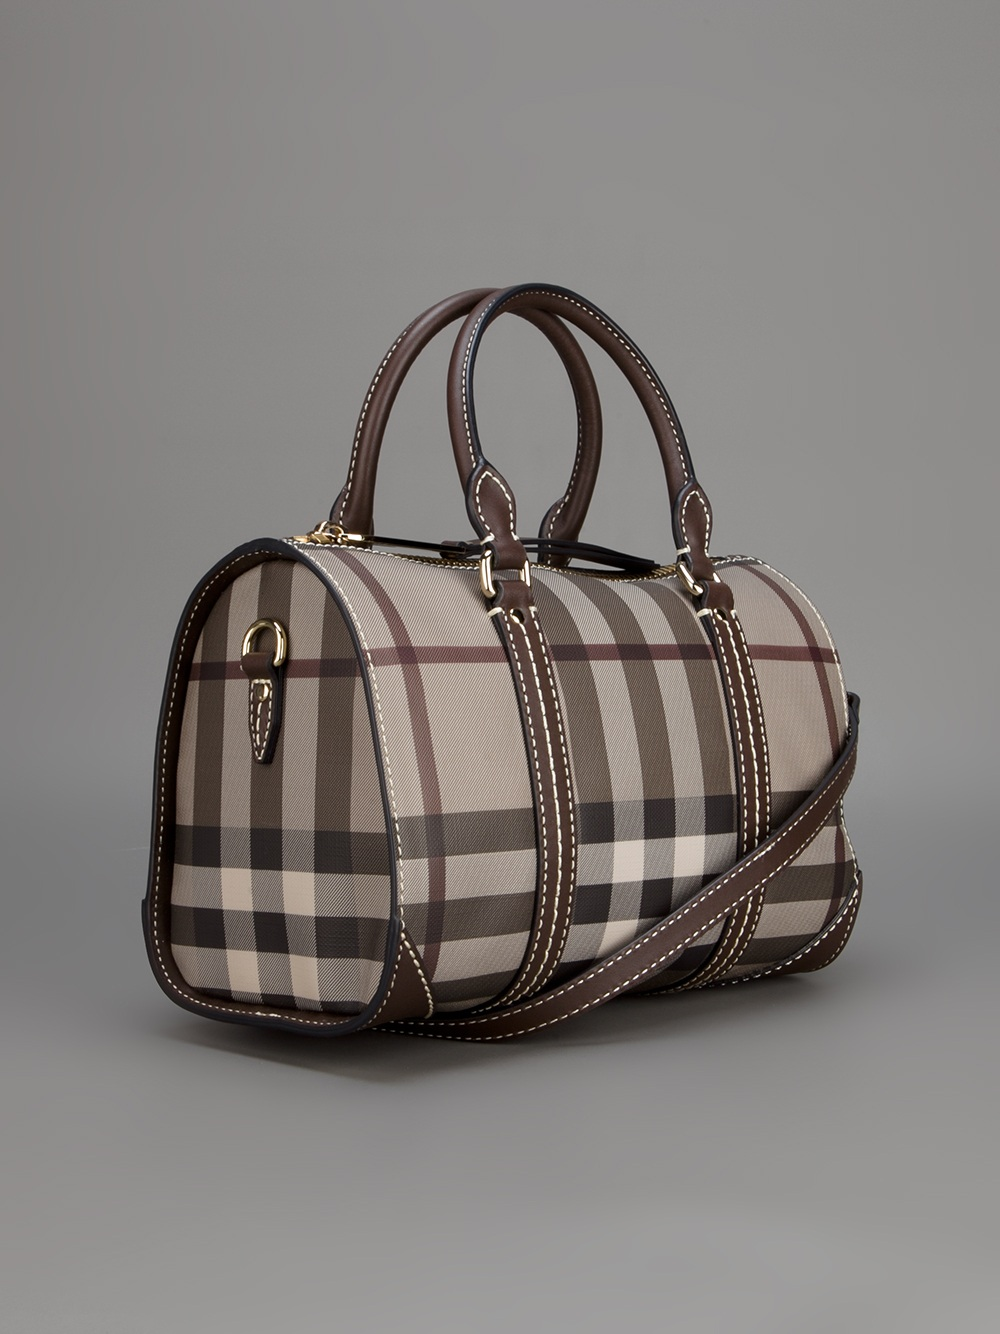 burberry gray bag zjld  Gallery